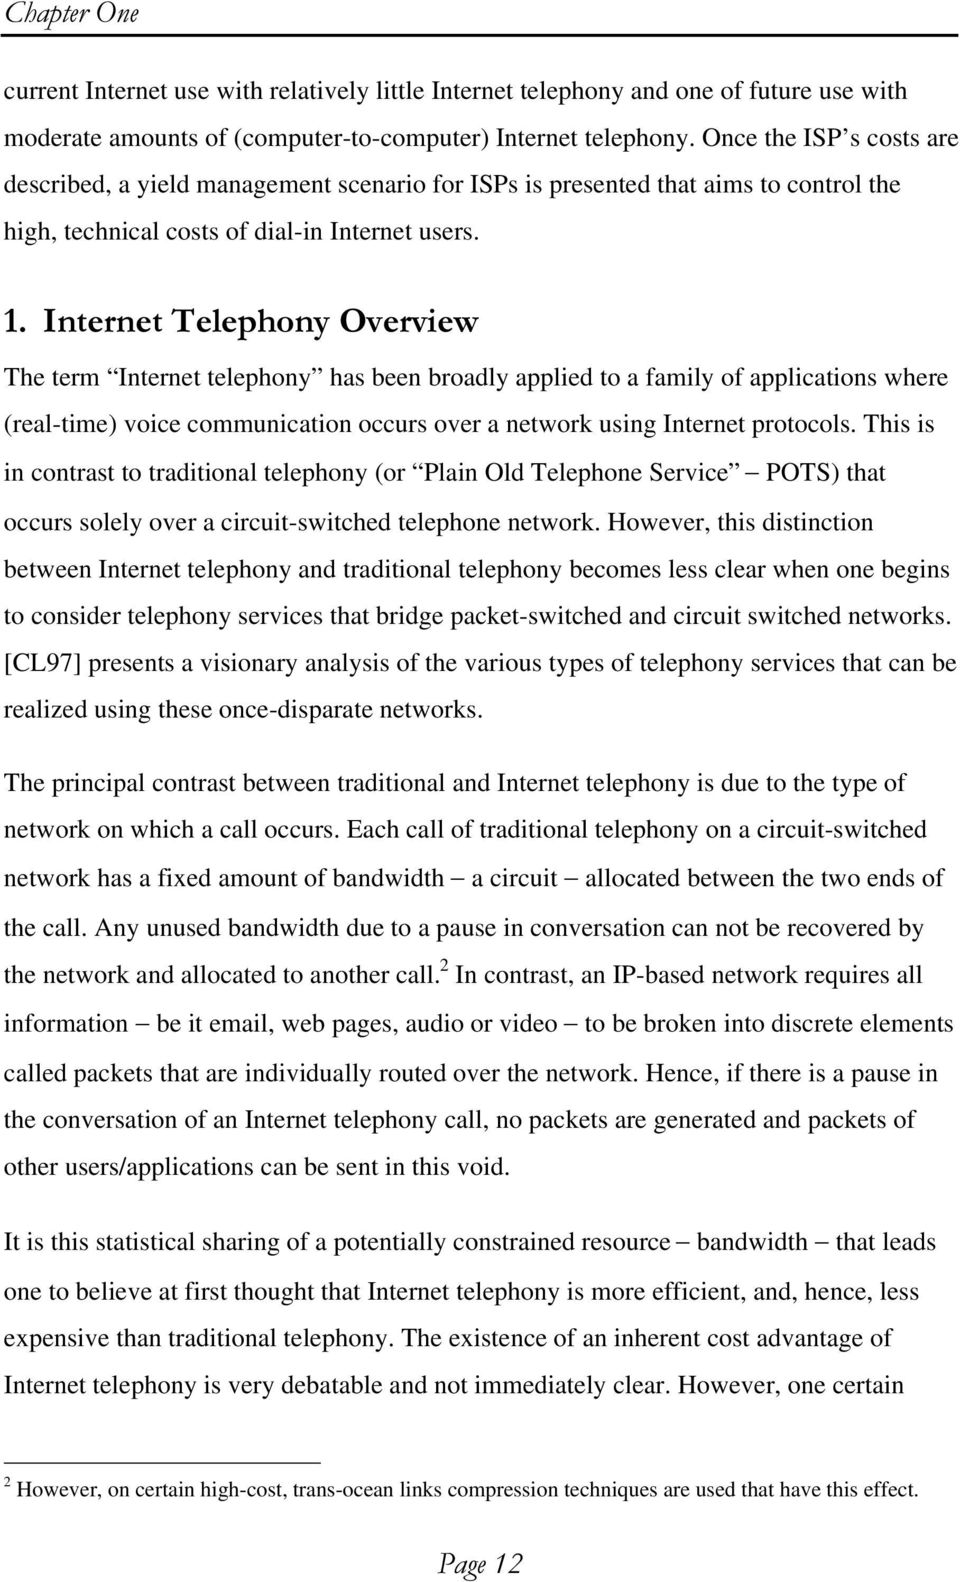 The term Internet telephony has been broadly applied to a family of applications where (real-time) voice communication occurs over a network using Internet protocols.